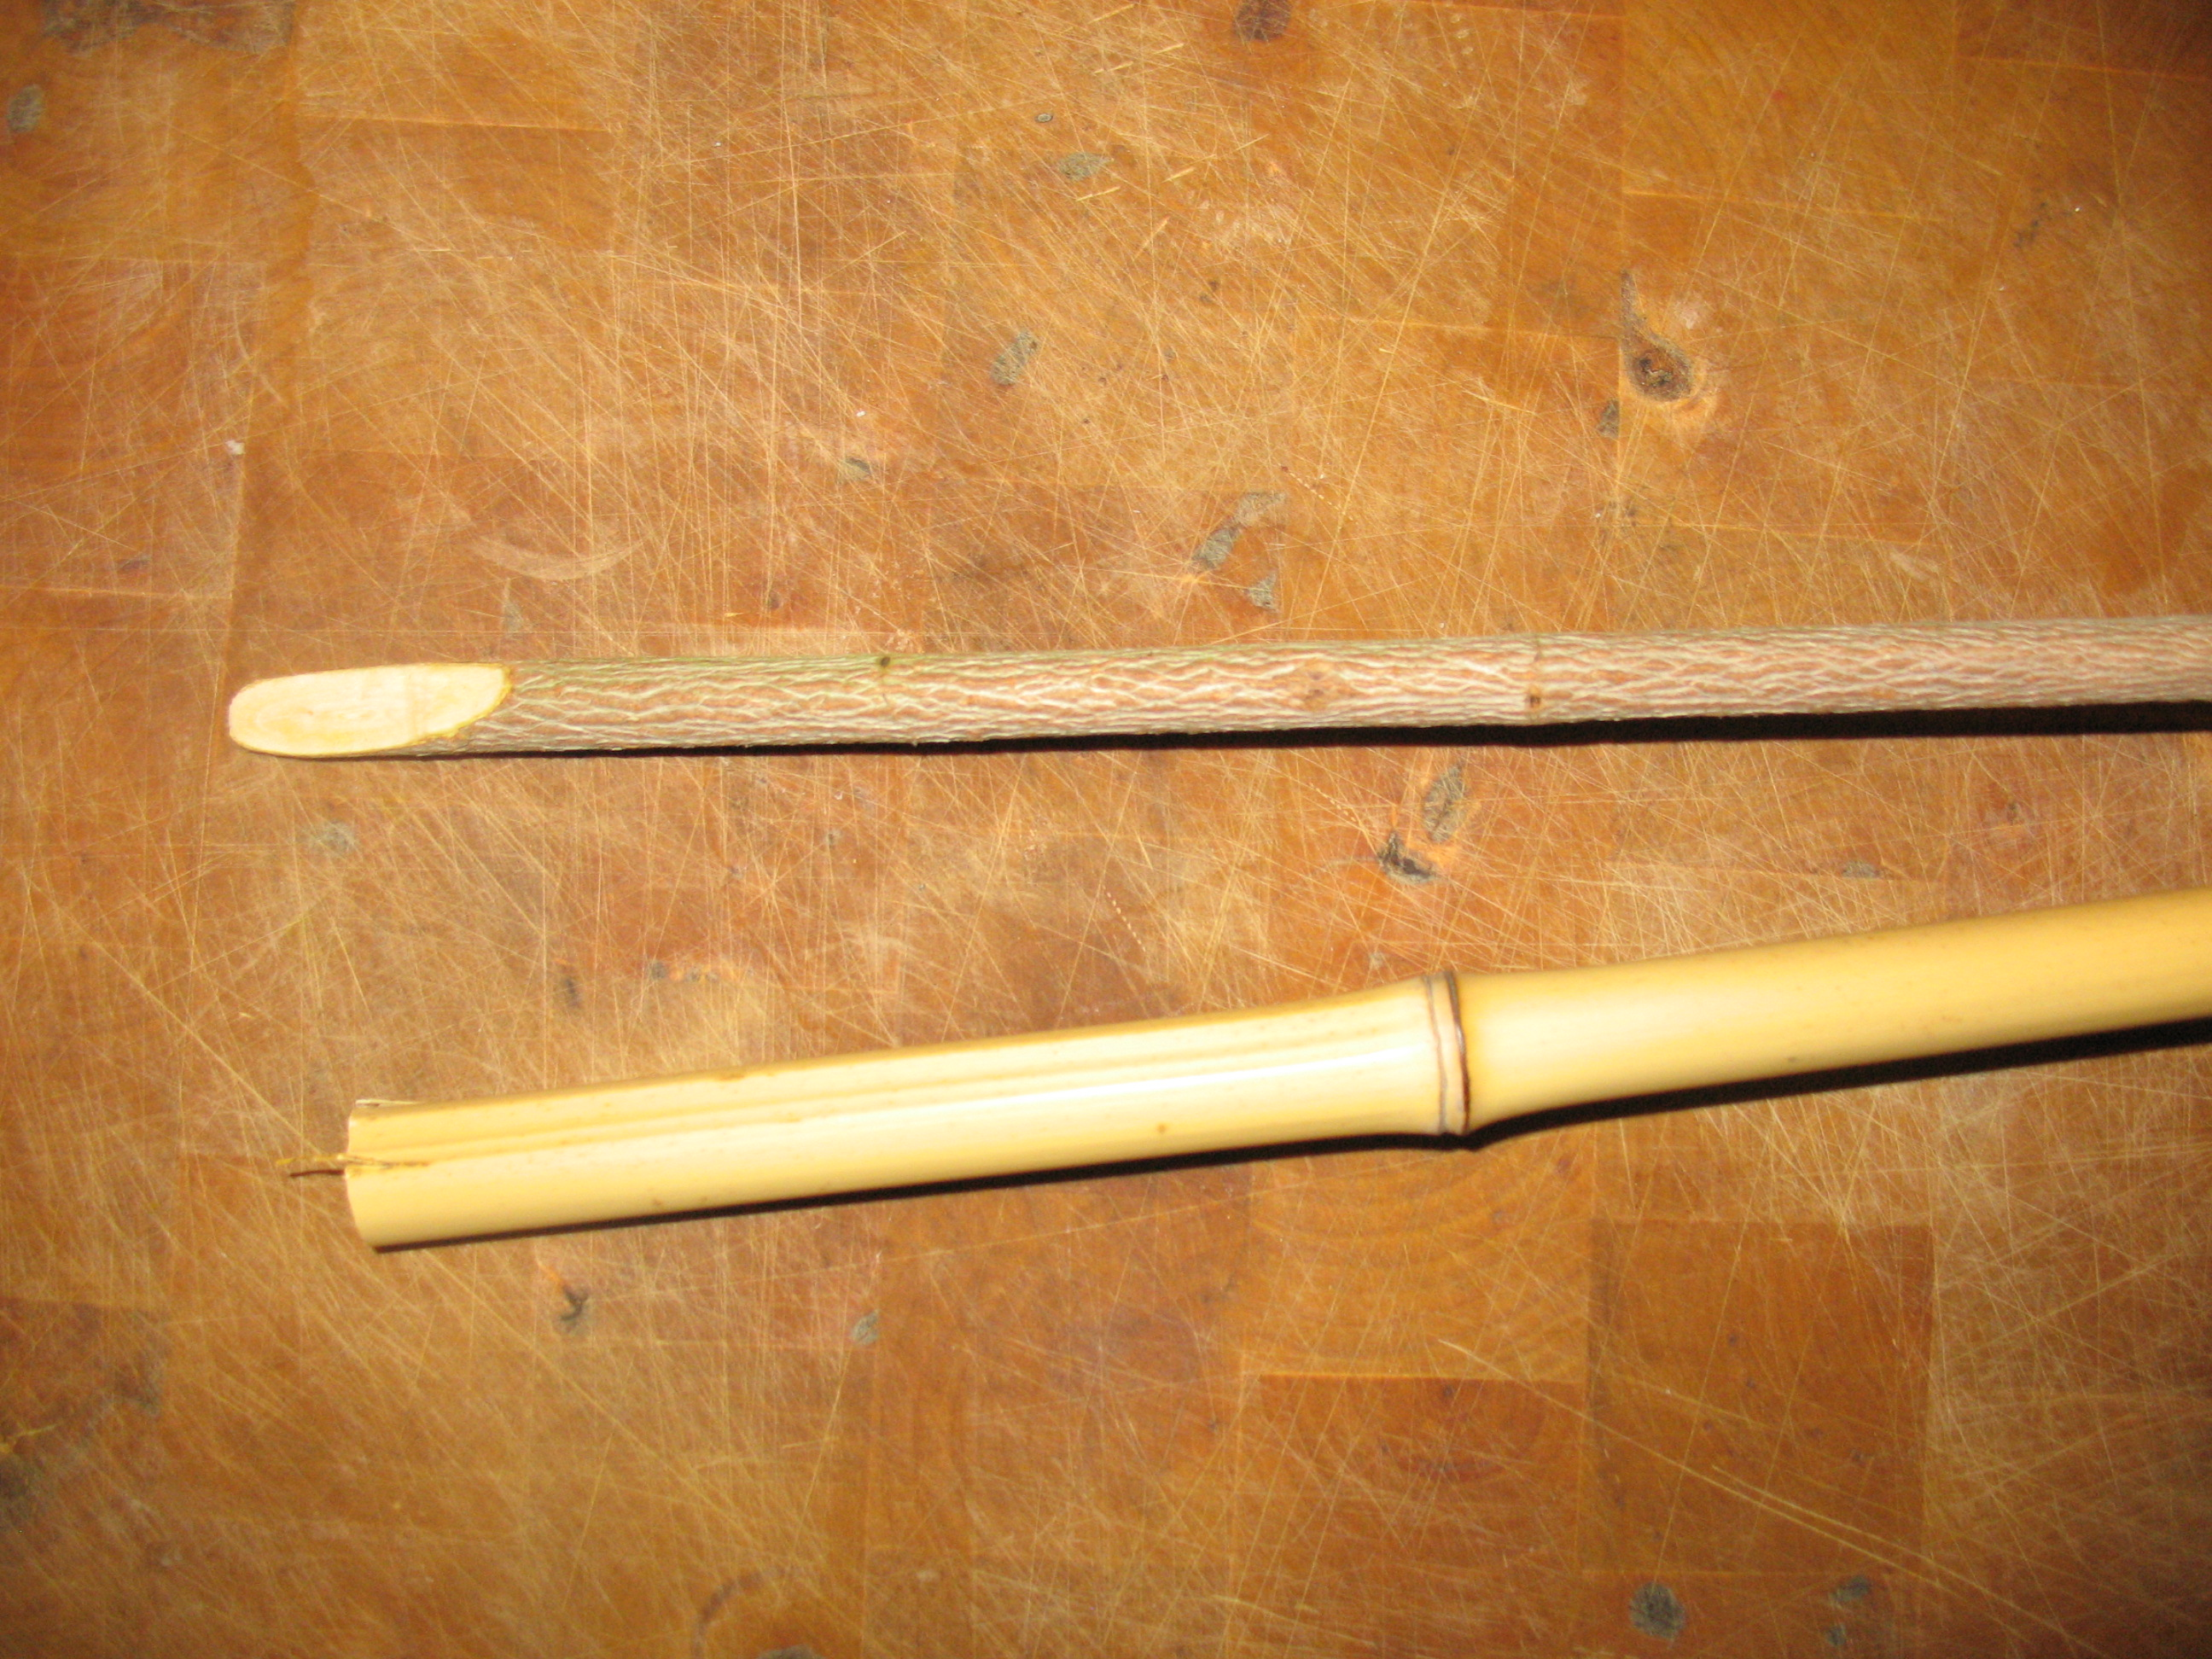 How To Make A Whistle Out Of Wood